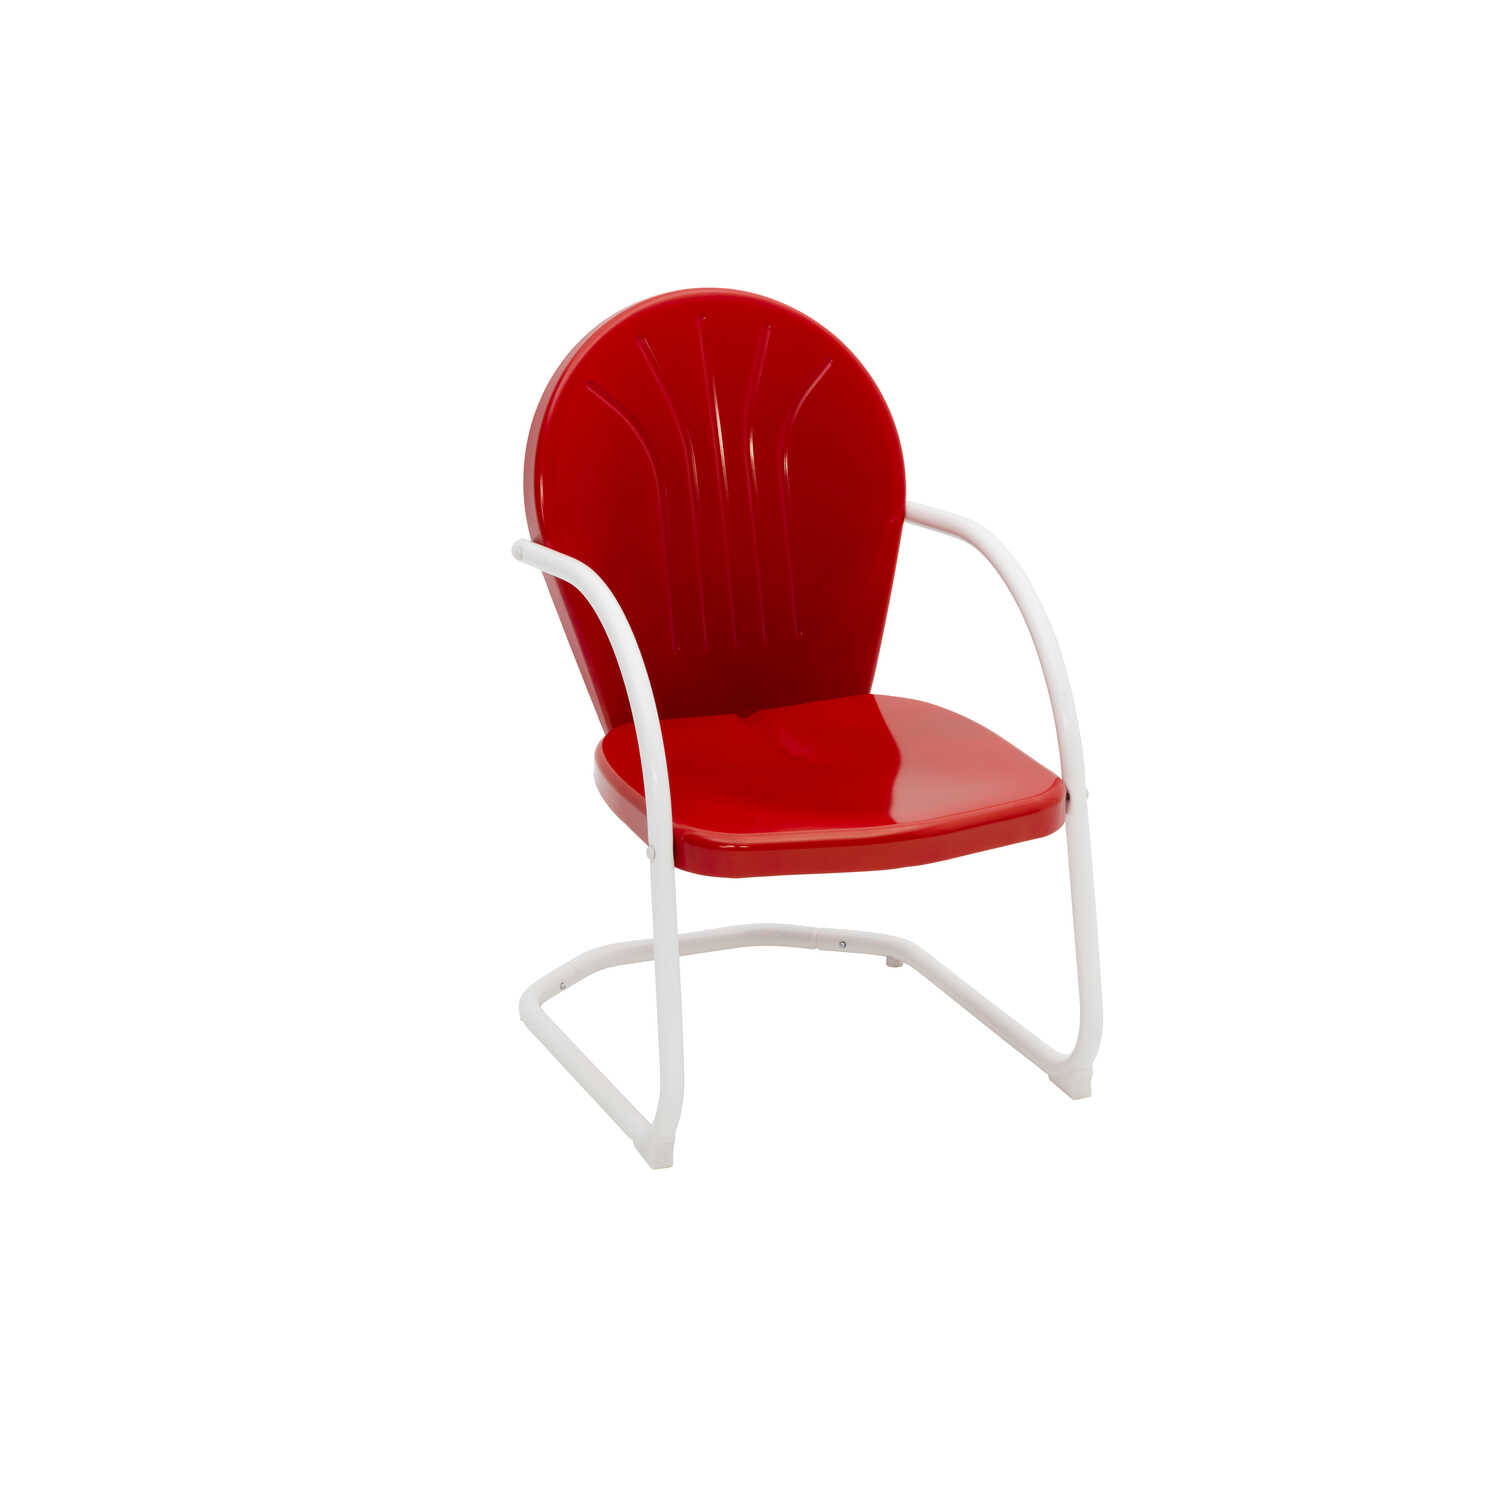 Jack Post  Red  Steel  Retro  Chair